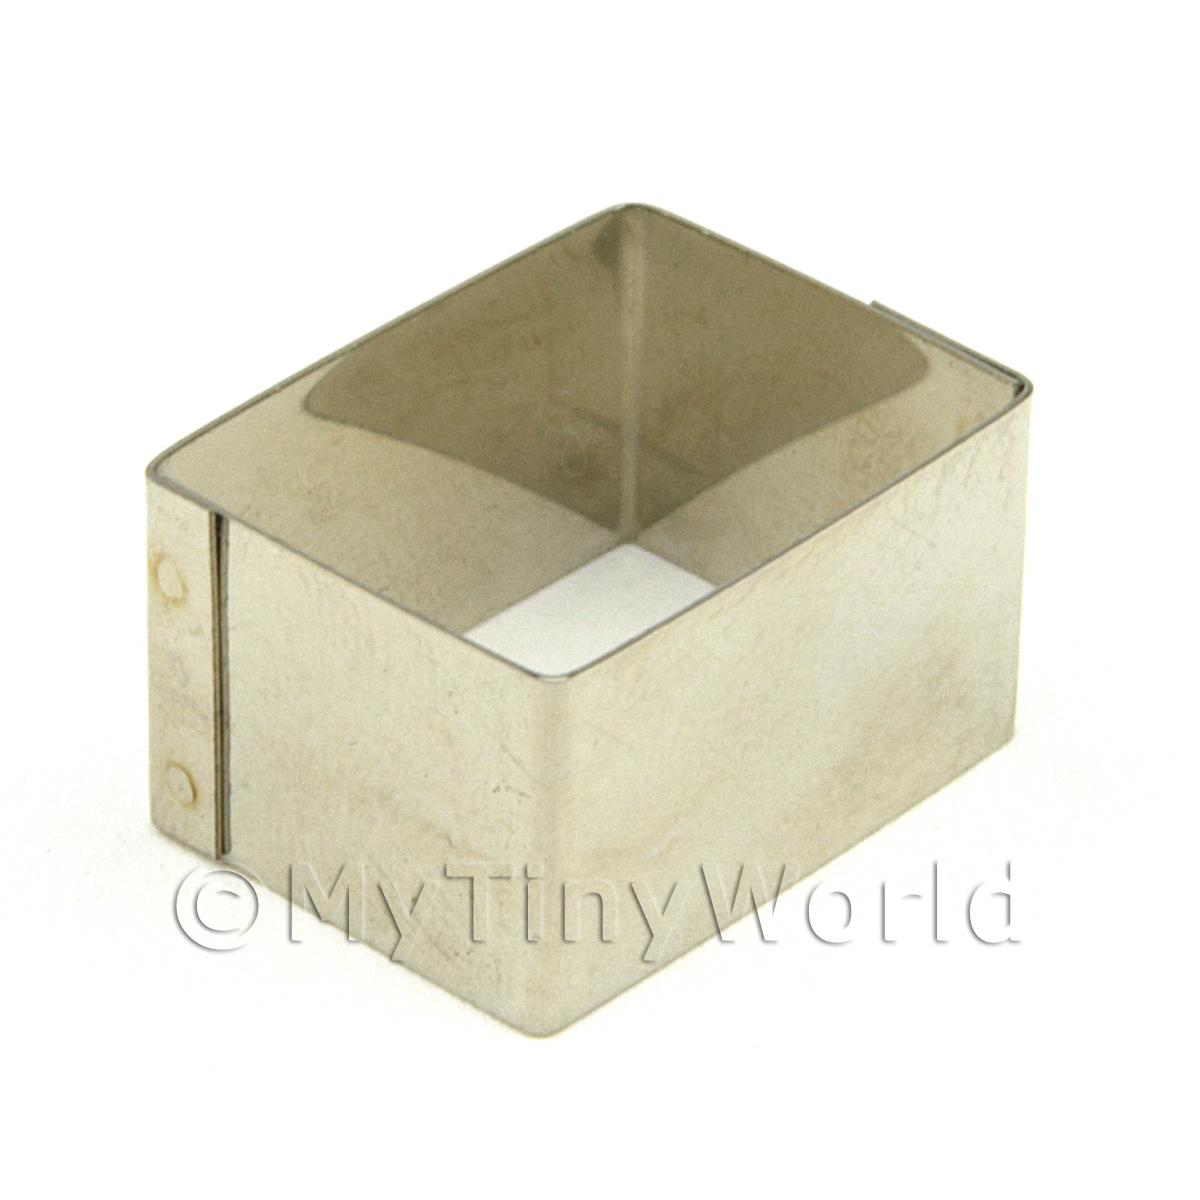 Metal Rectangular Shape Sugarcraft / Clay Cutter (20mm)